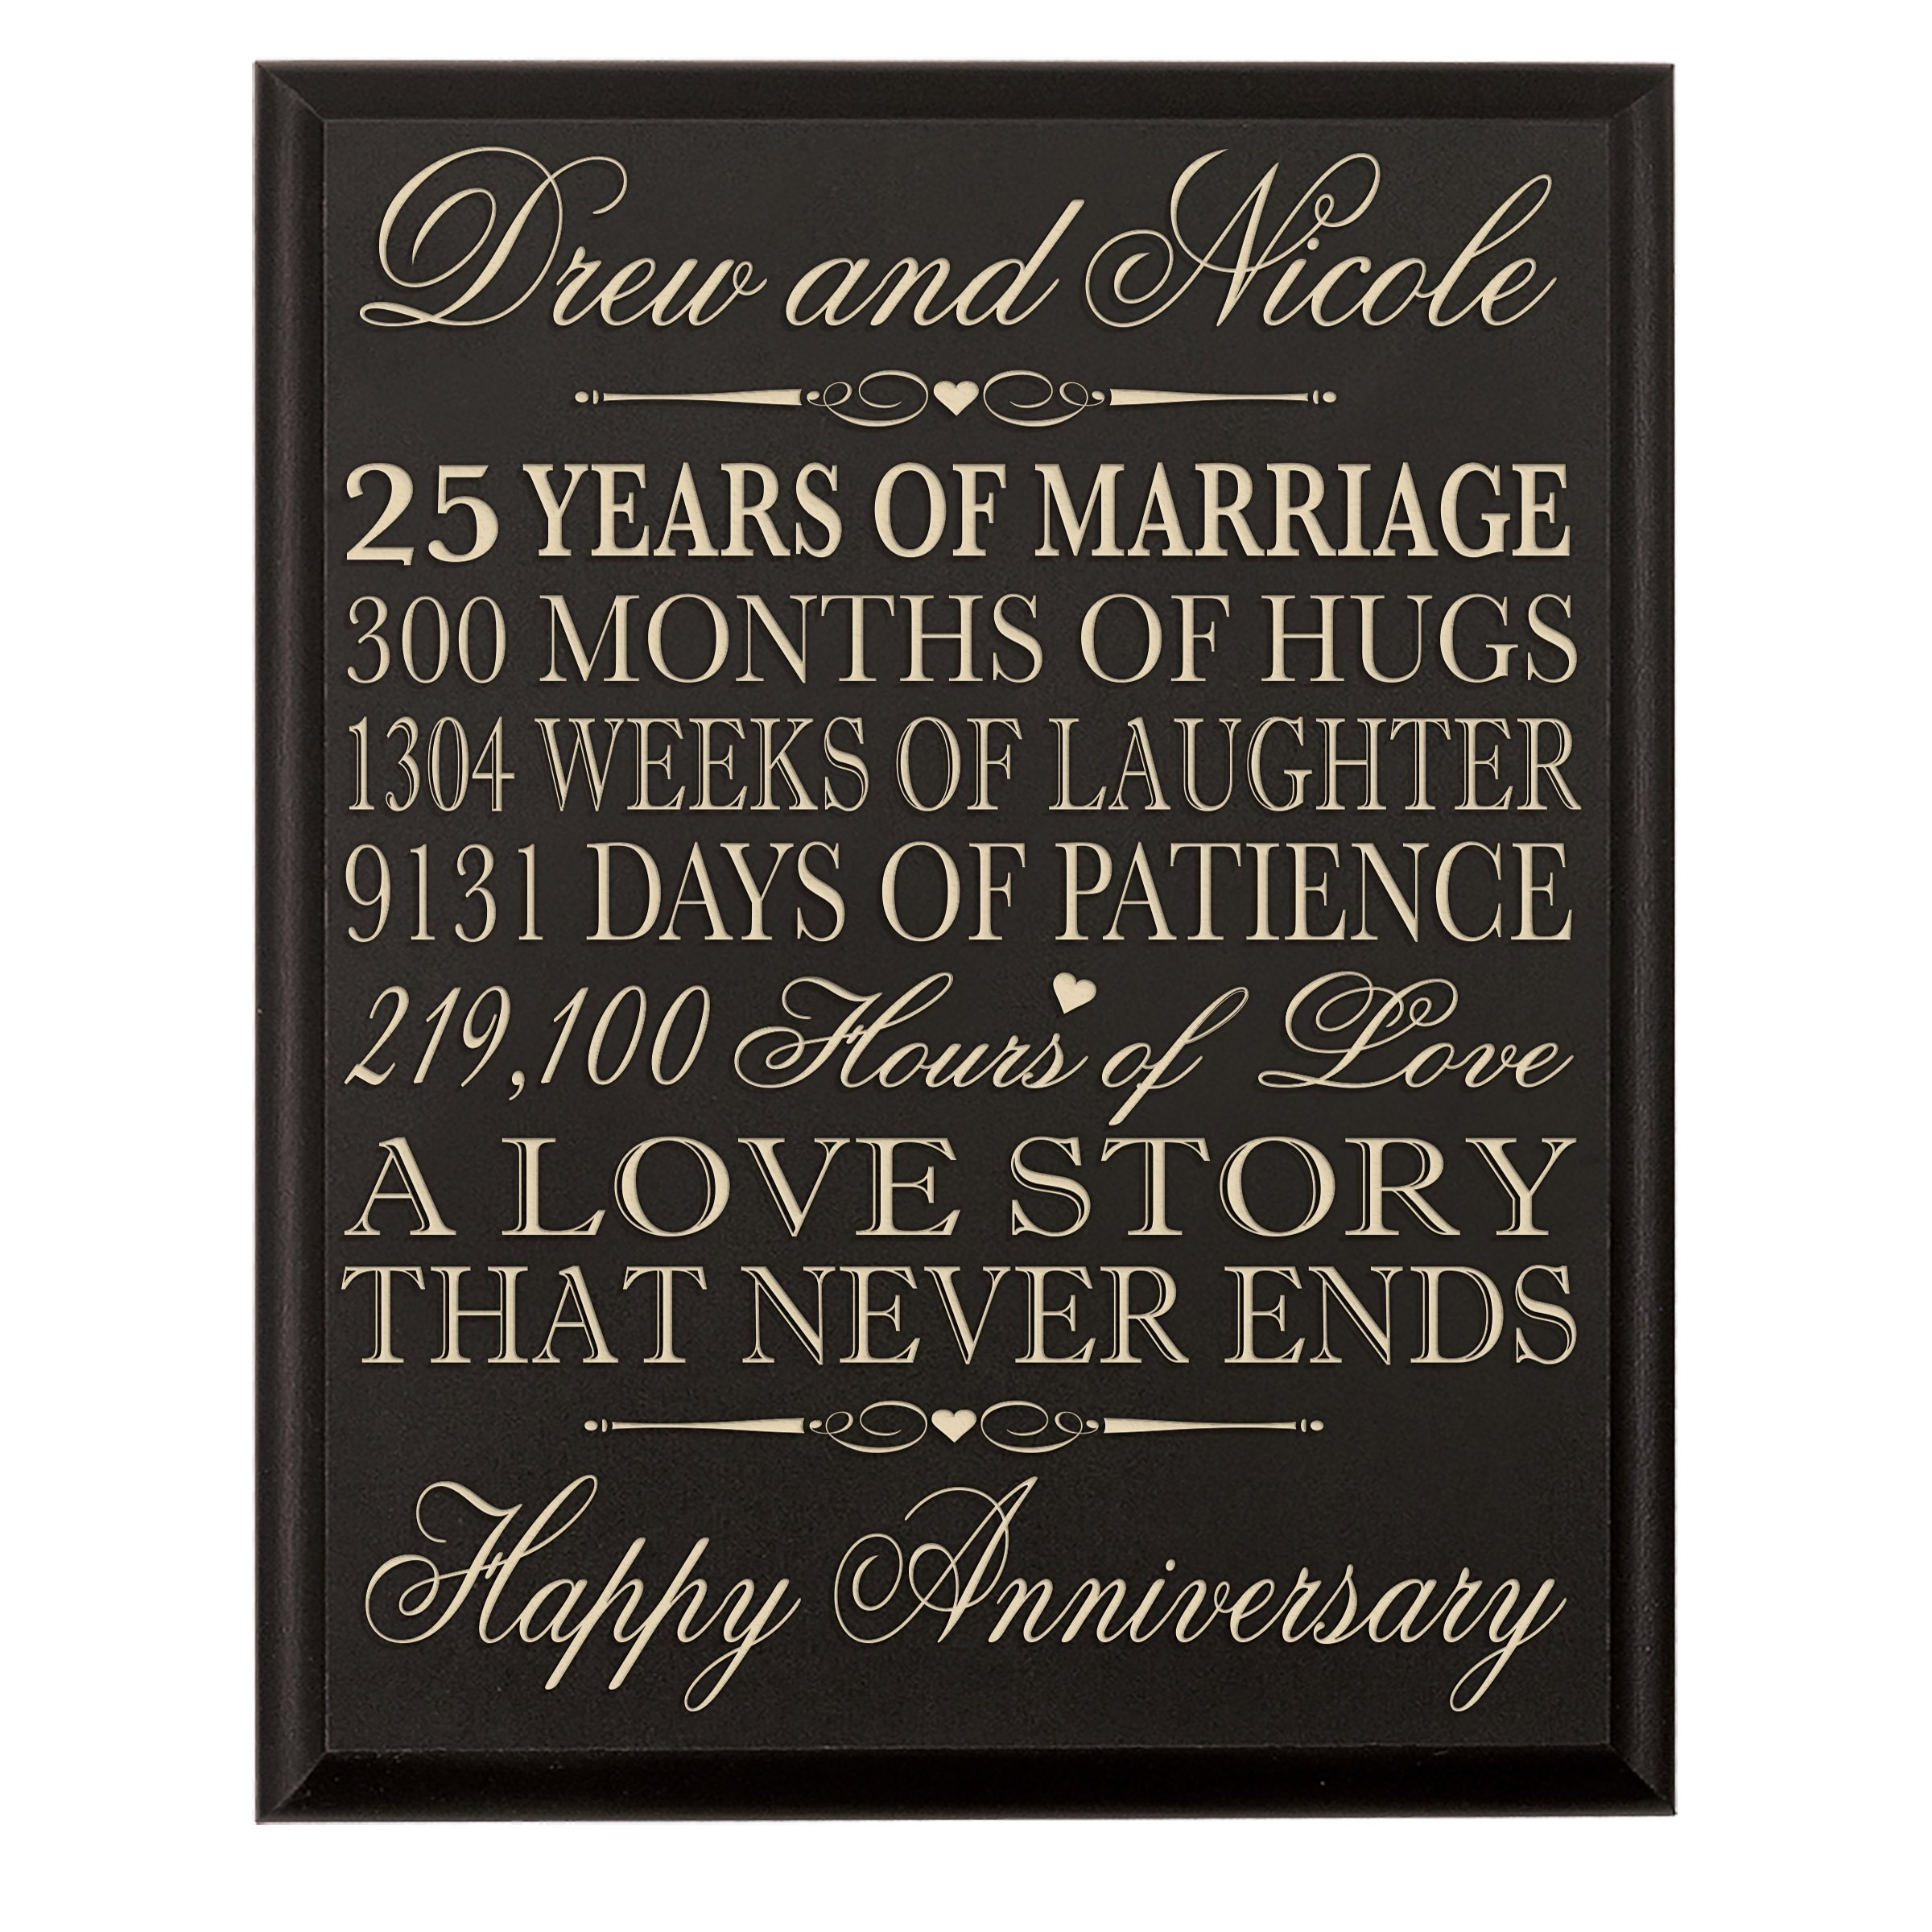 Buy Personalized 25th Wedding Anniversary Wall Plaque Gifts For